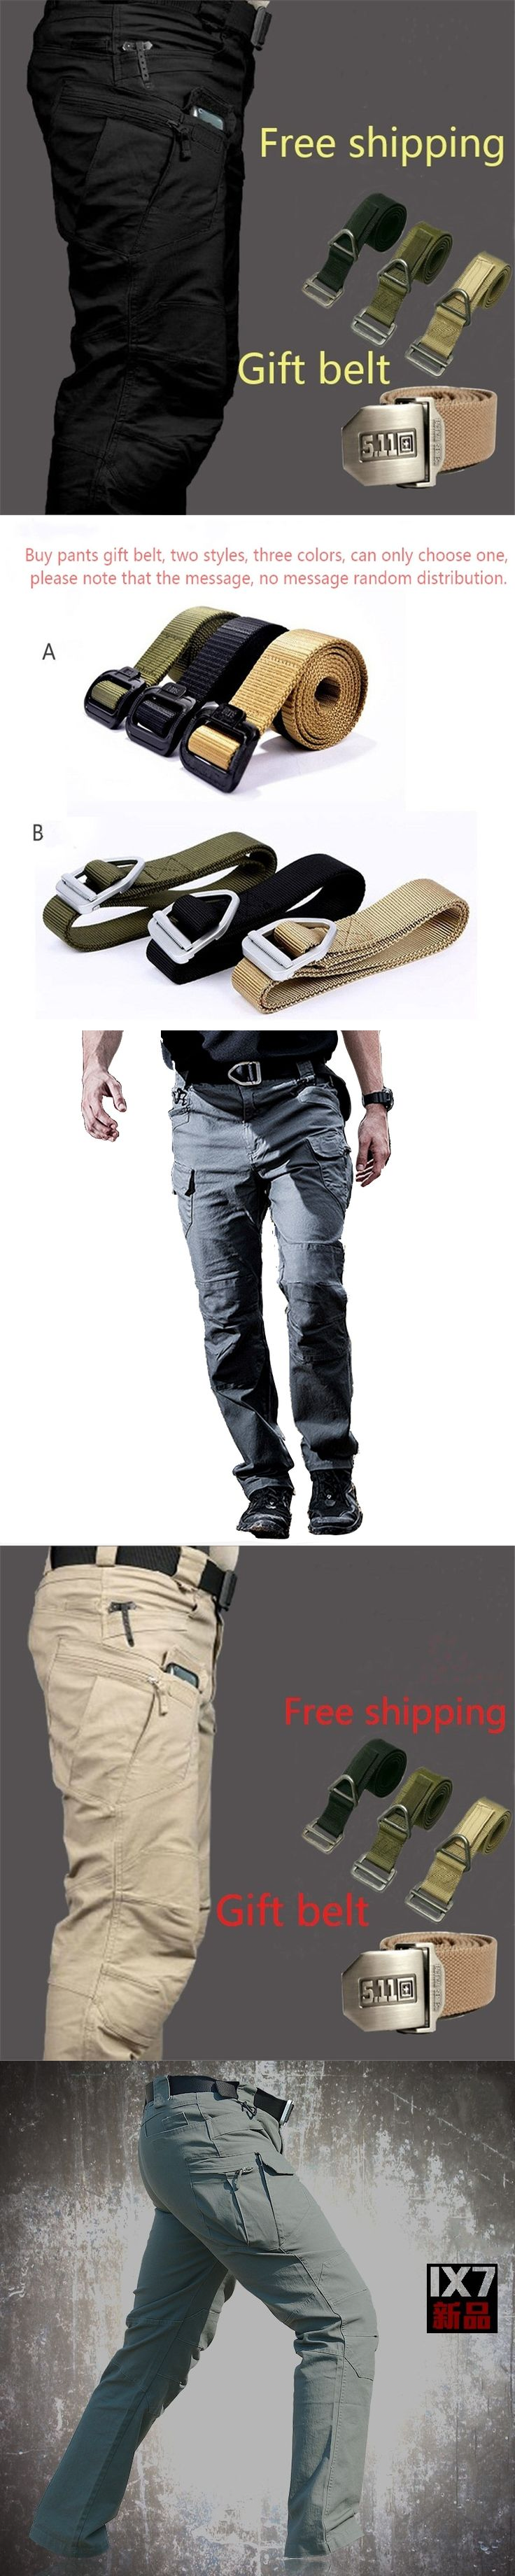 IX7 IX9 Man City Tactical Cargo Pants Combat SWAT Army Military Cotton Many Pockets Stretch Flexible Casual Trousers